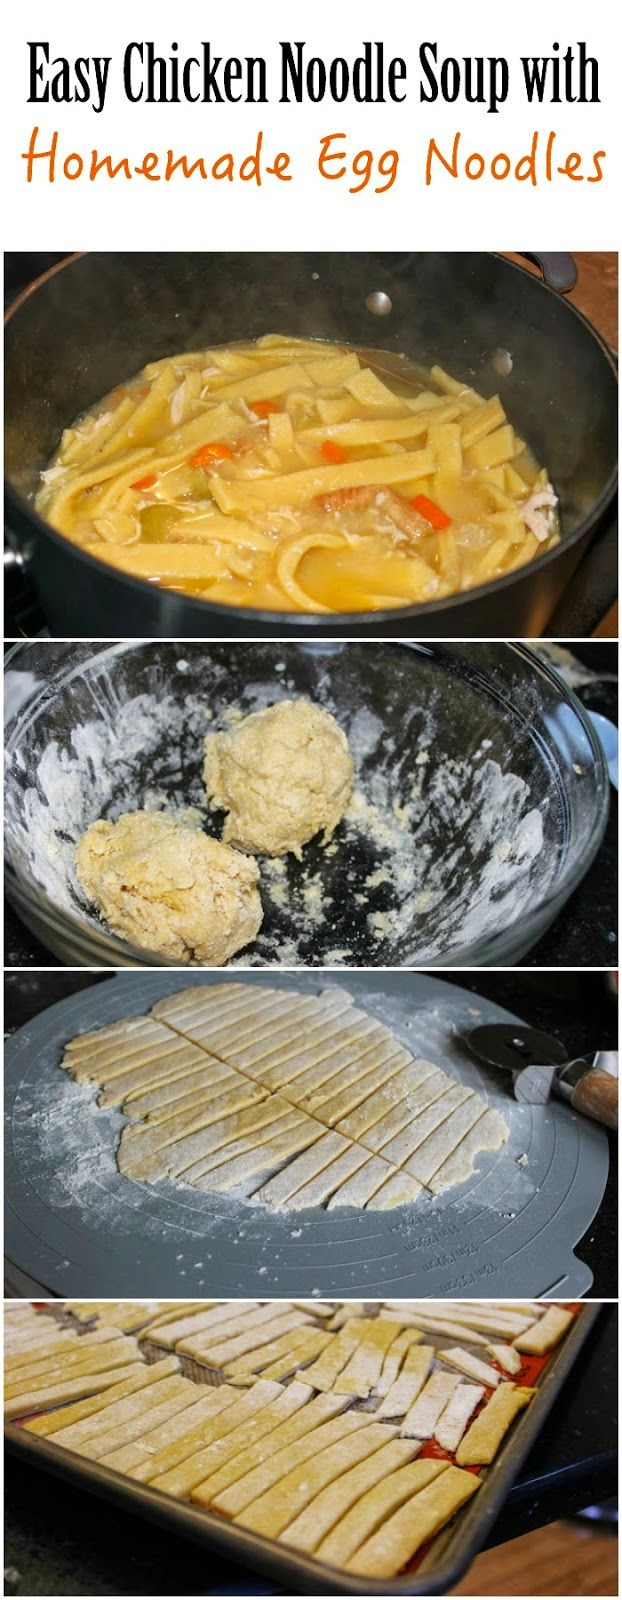 Easy chicken noodle soup with homemade egg noodles